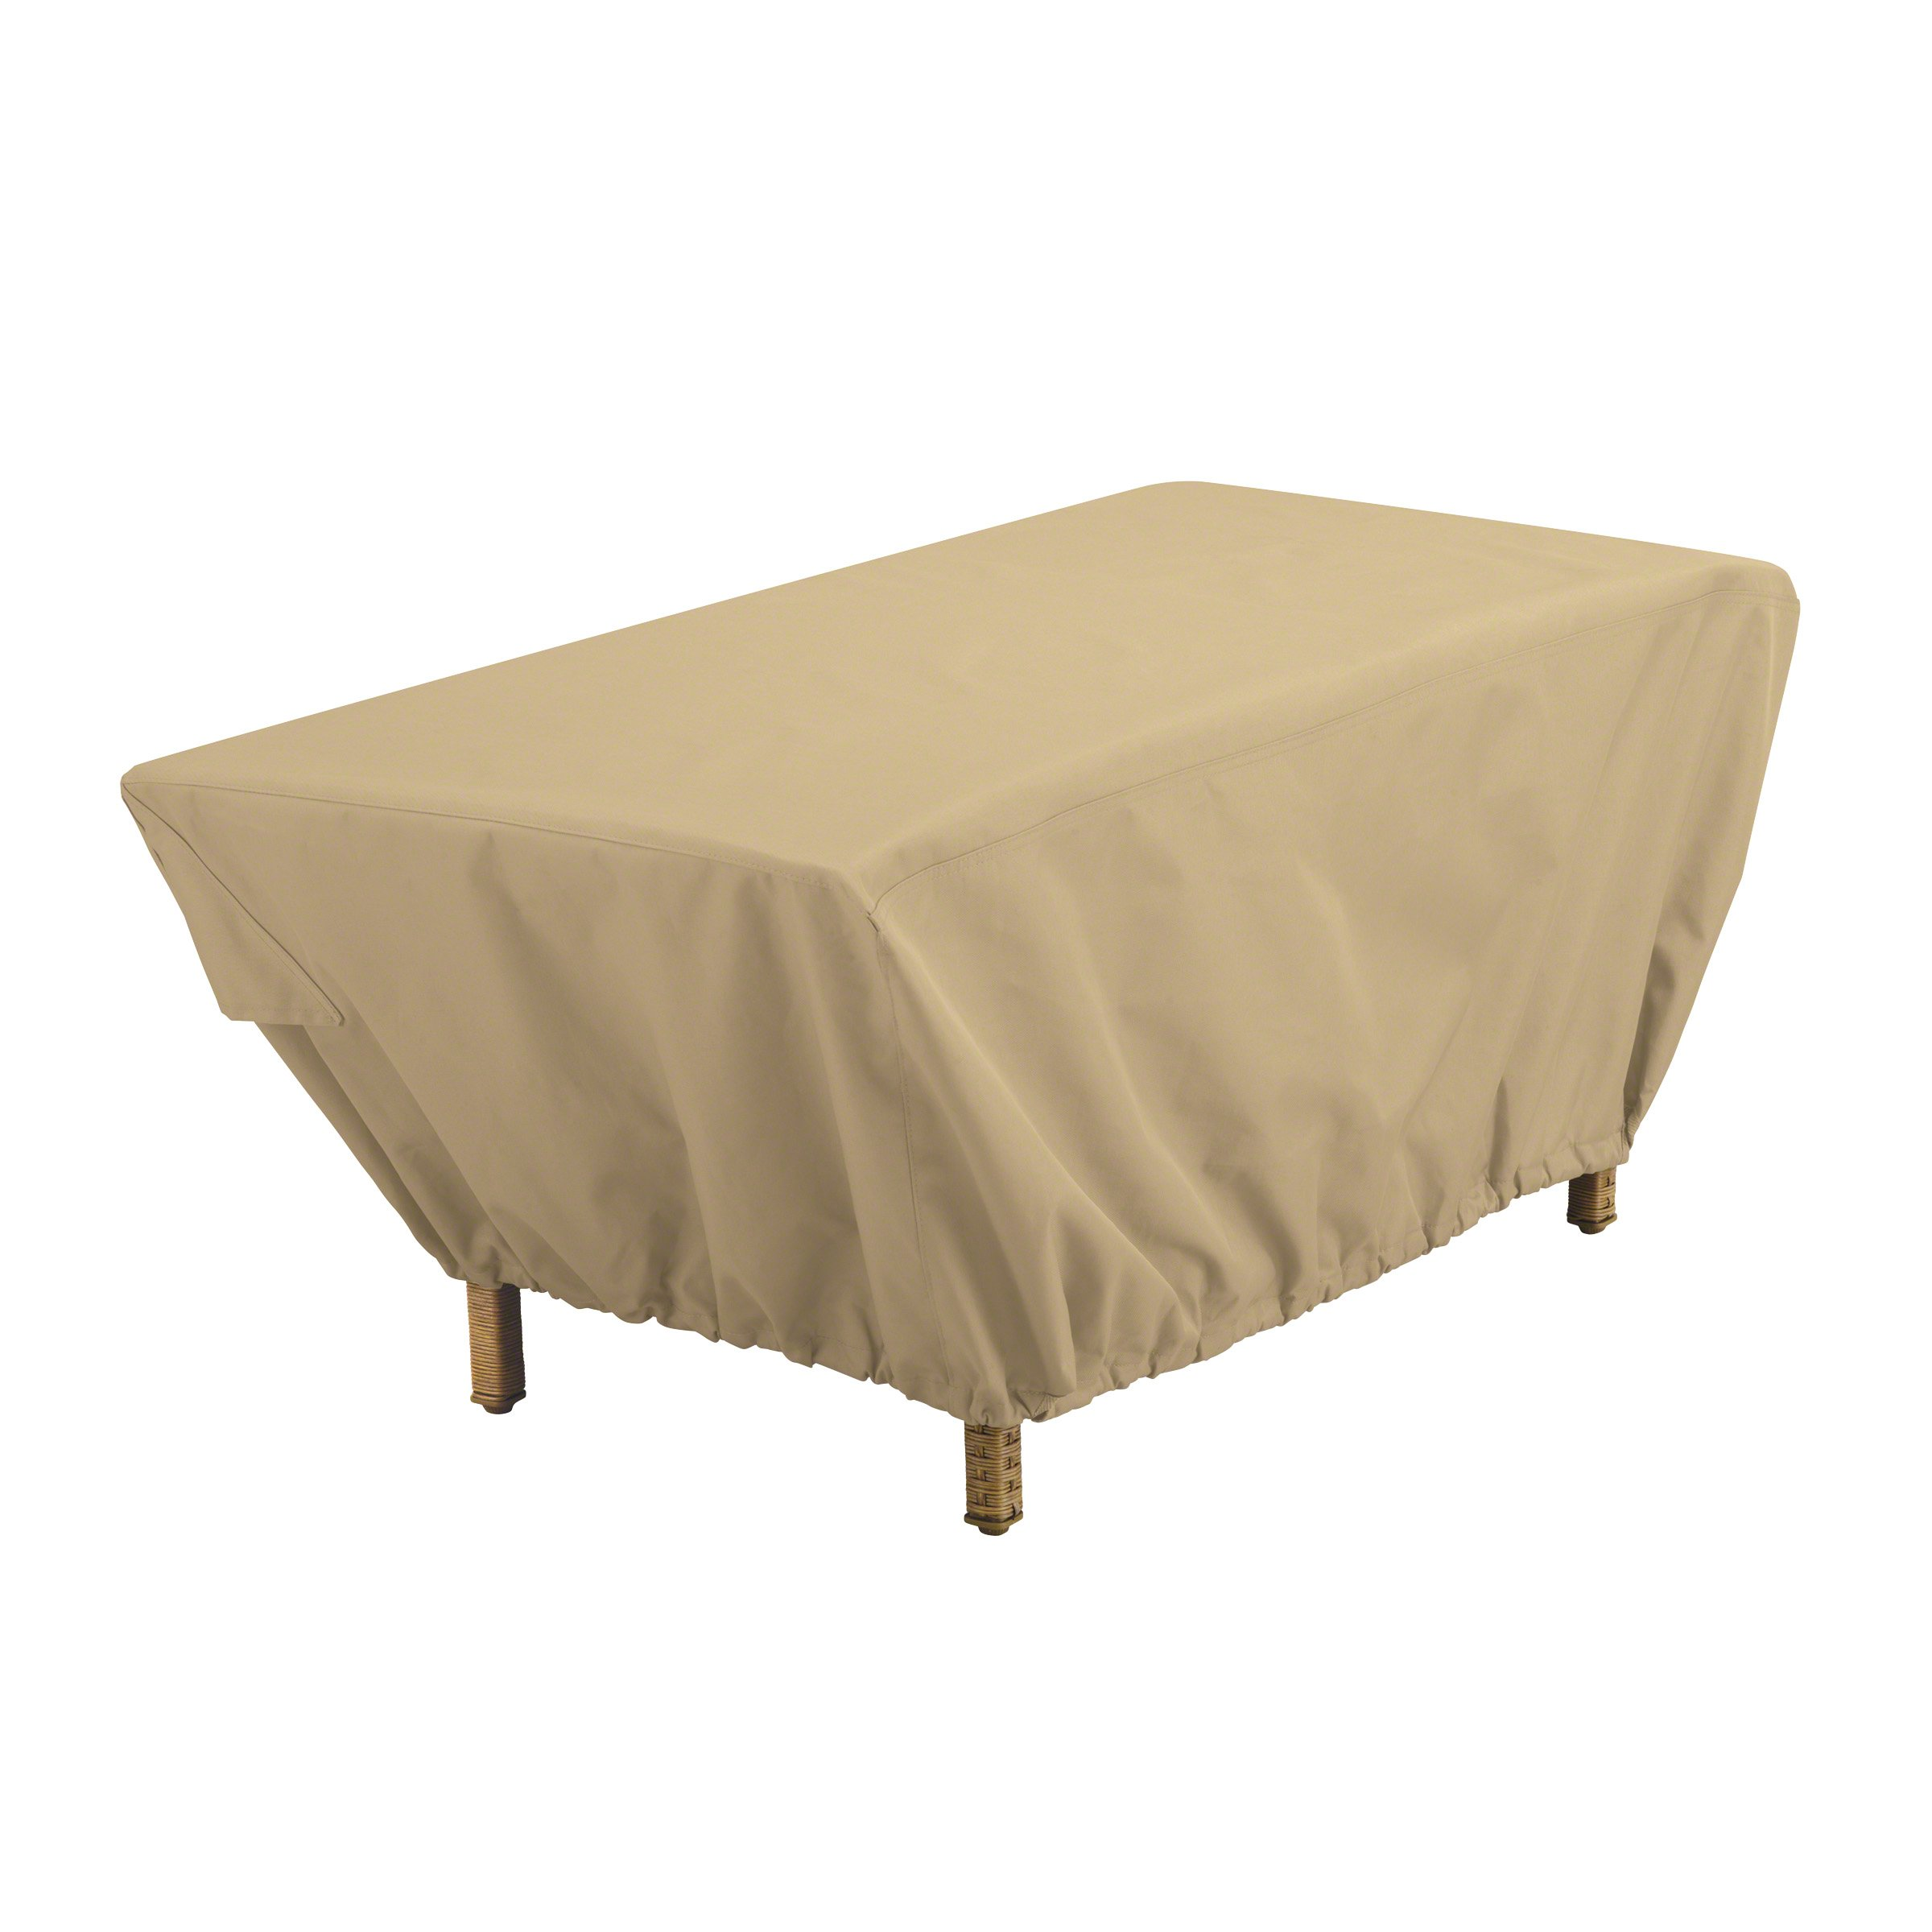 Classic Accessories Terrazzo Rectangular Patio Coffee Table Cover by Classic Accessories